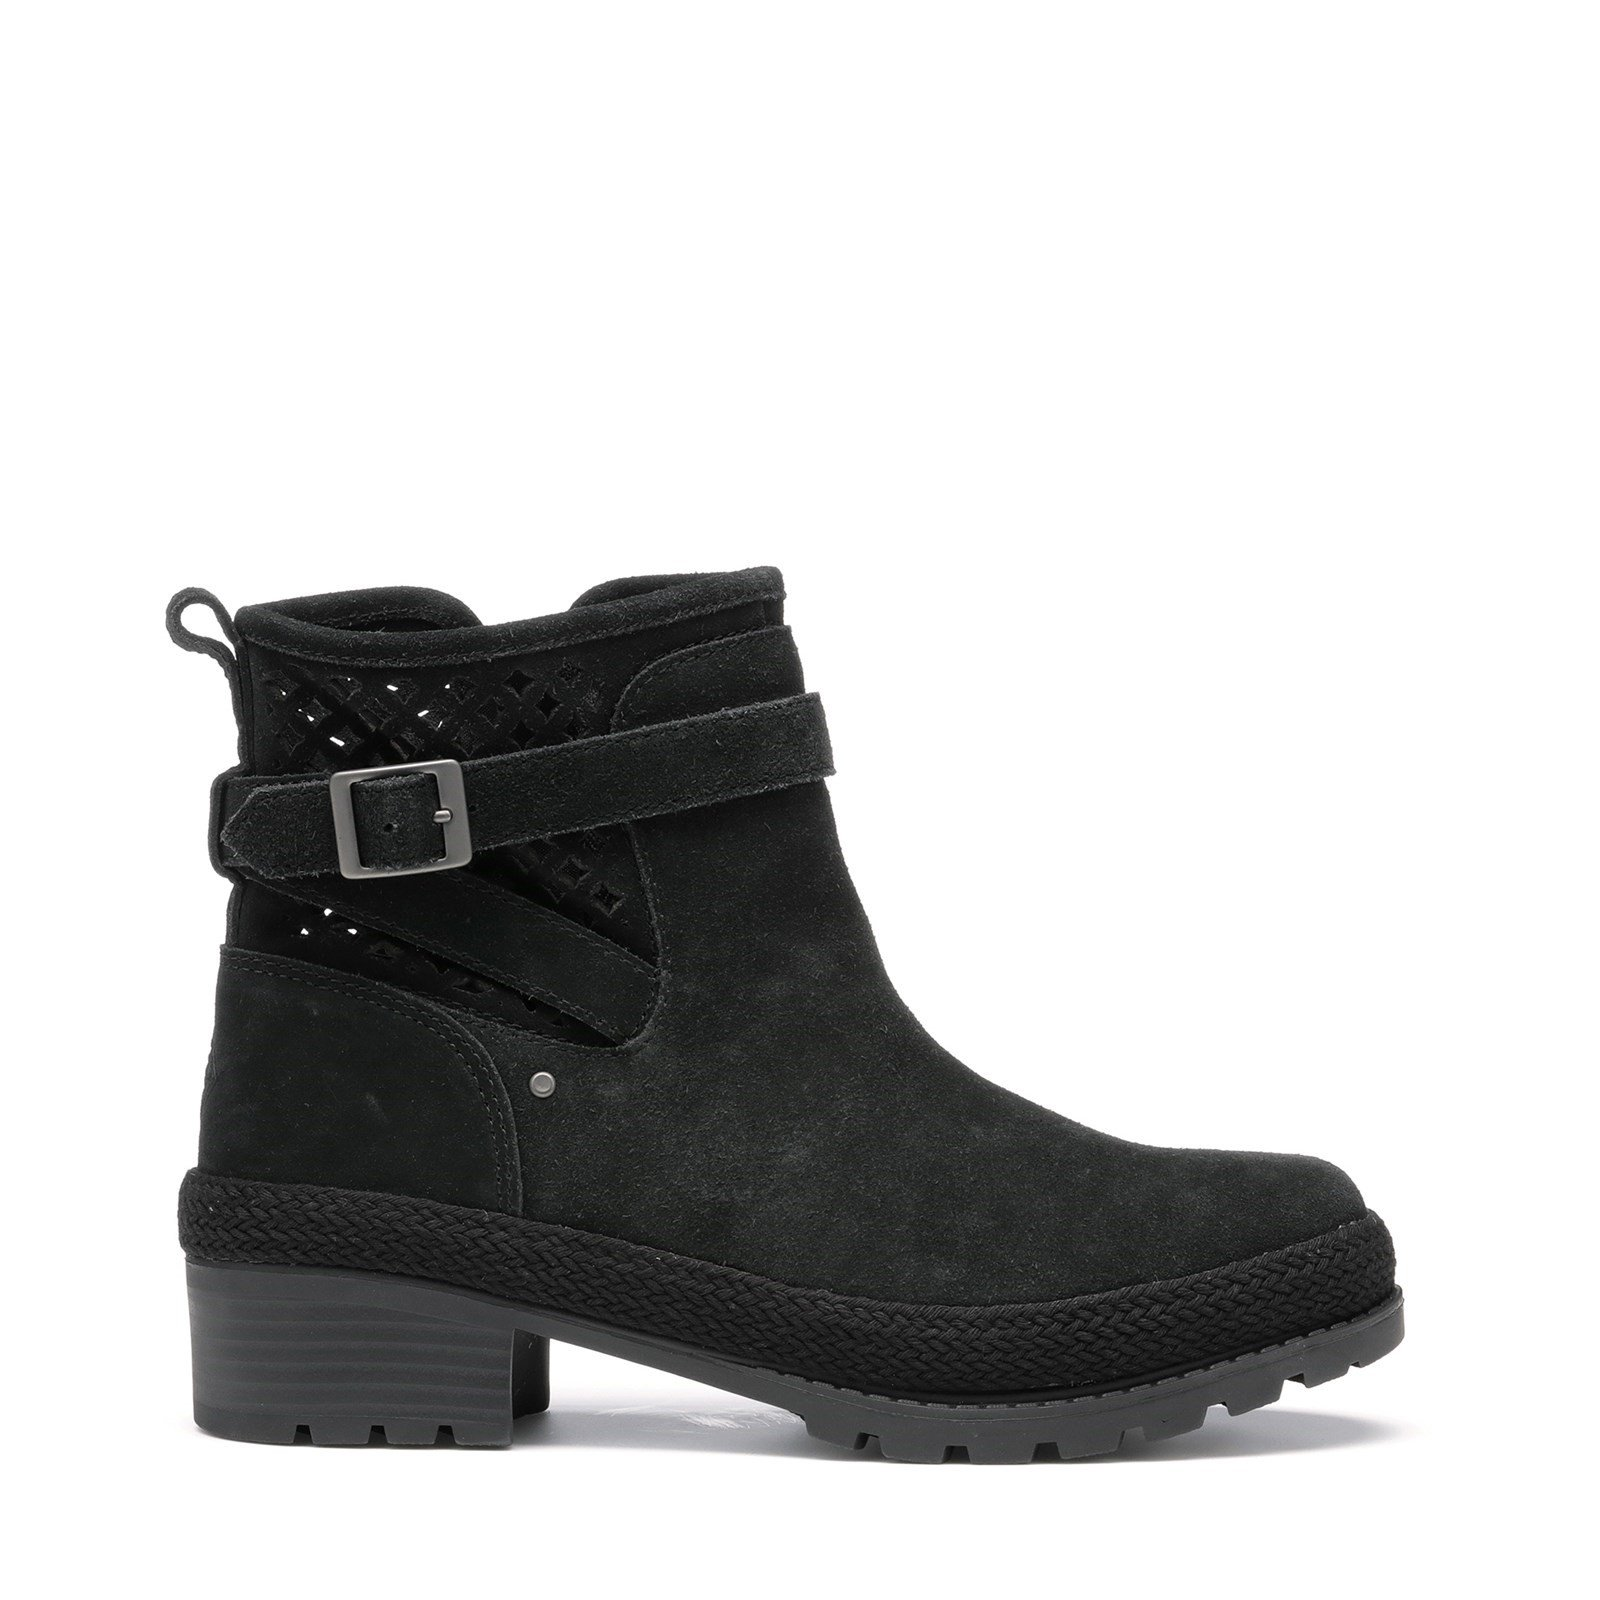 Muck Boots Women's Liberty Perforated Leather Boots Various Colours 31814 - Black 4